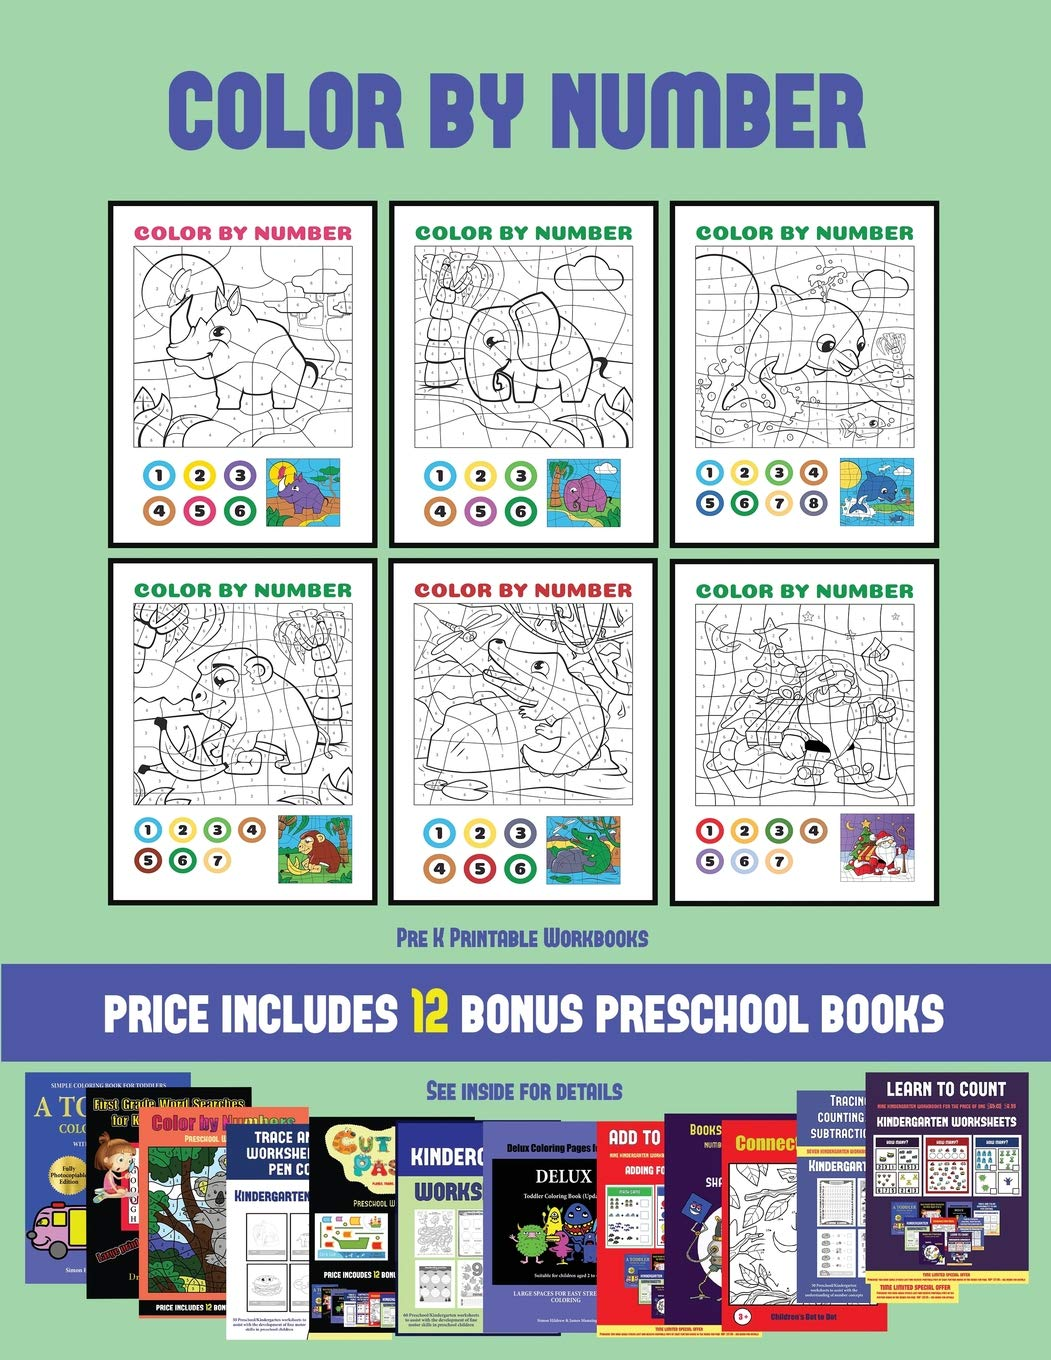 Pre K Printable Workbooks Color By Number 20 Printable Color By Number Worksheets For Preschool Kindergarten Children The Price Of This Book Pdf Kindergarten Preschool Workbooks Manning James Manning Christabelle Workbooks Kindergarten